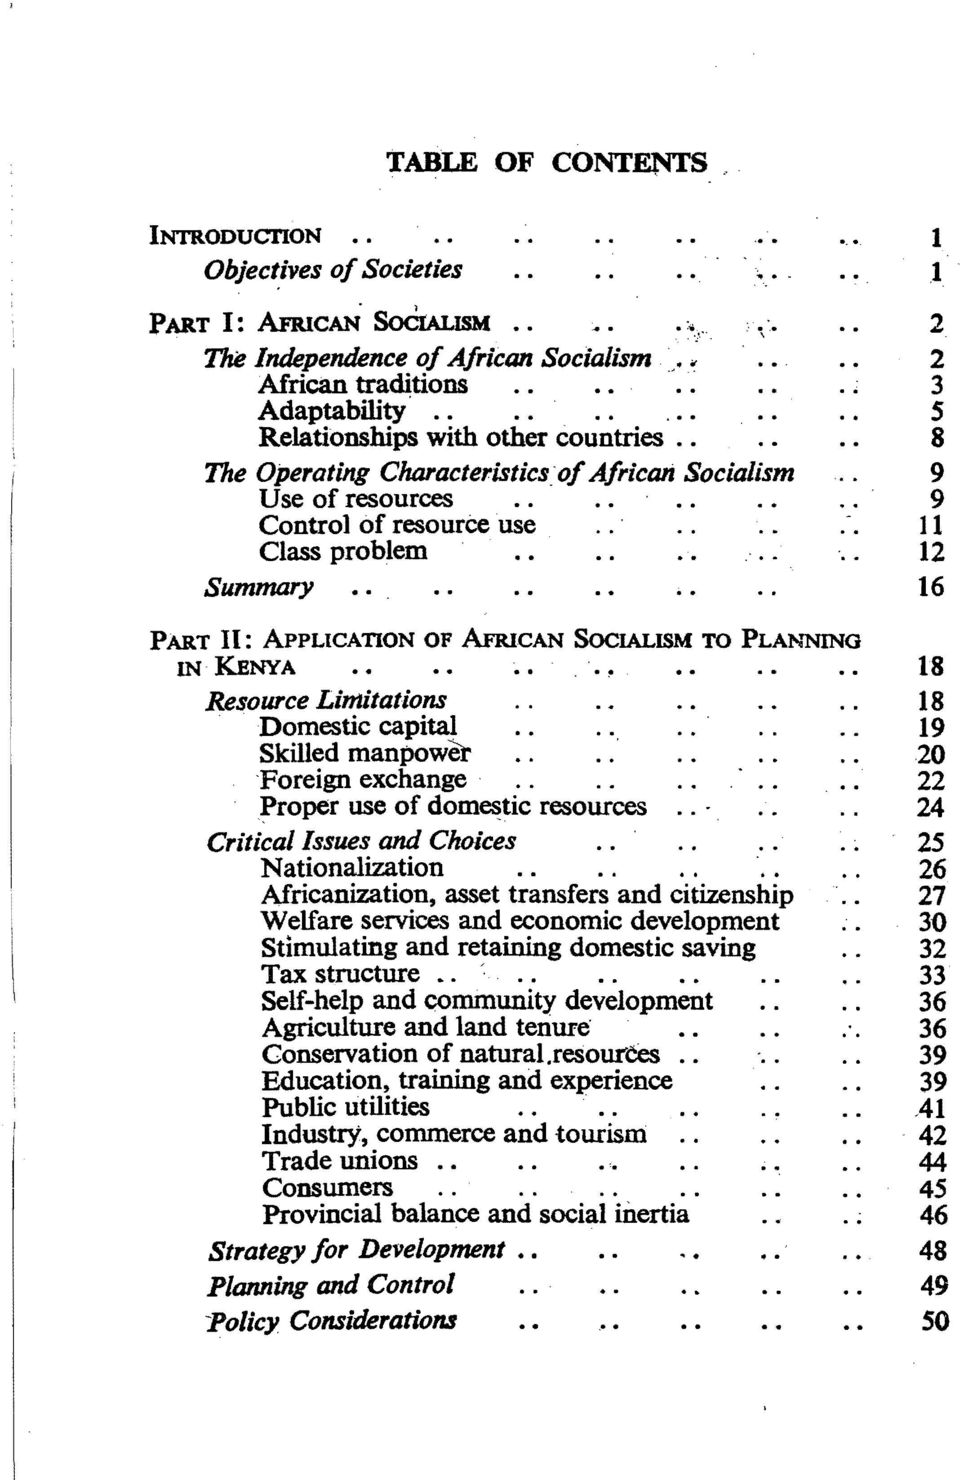 "16 2 PART II: ApPLICATION OF AFRICAN SocIALISM TO PLA~""NlNO IN KENYA ~ 18 Resource Limitations 18. Domestic capital 19 Skilled manpower 20 -Foreign exchange."